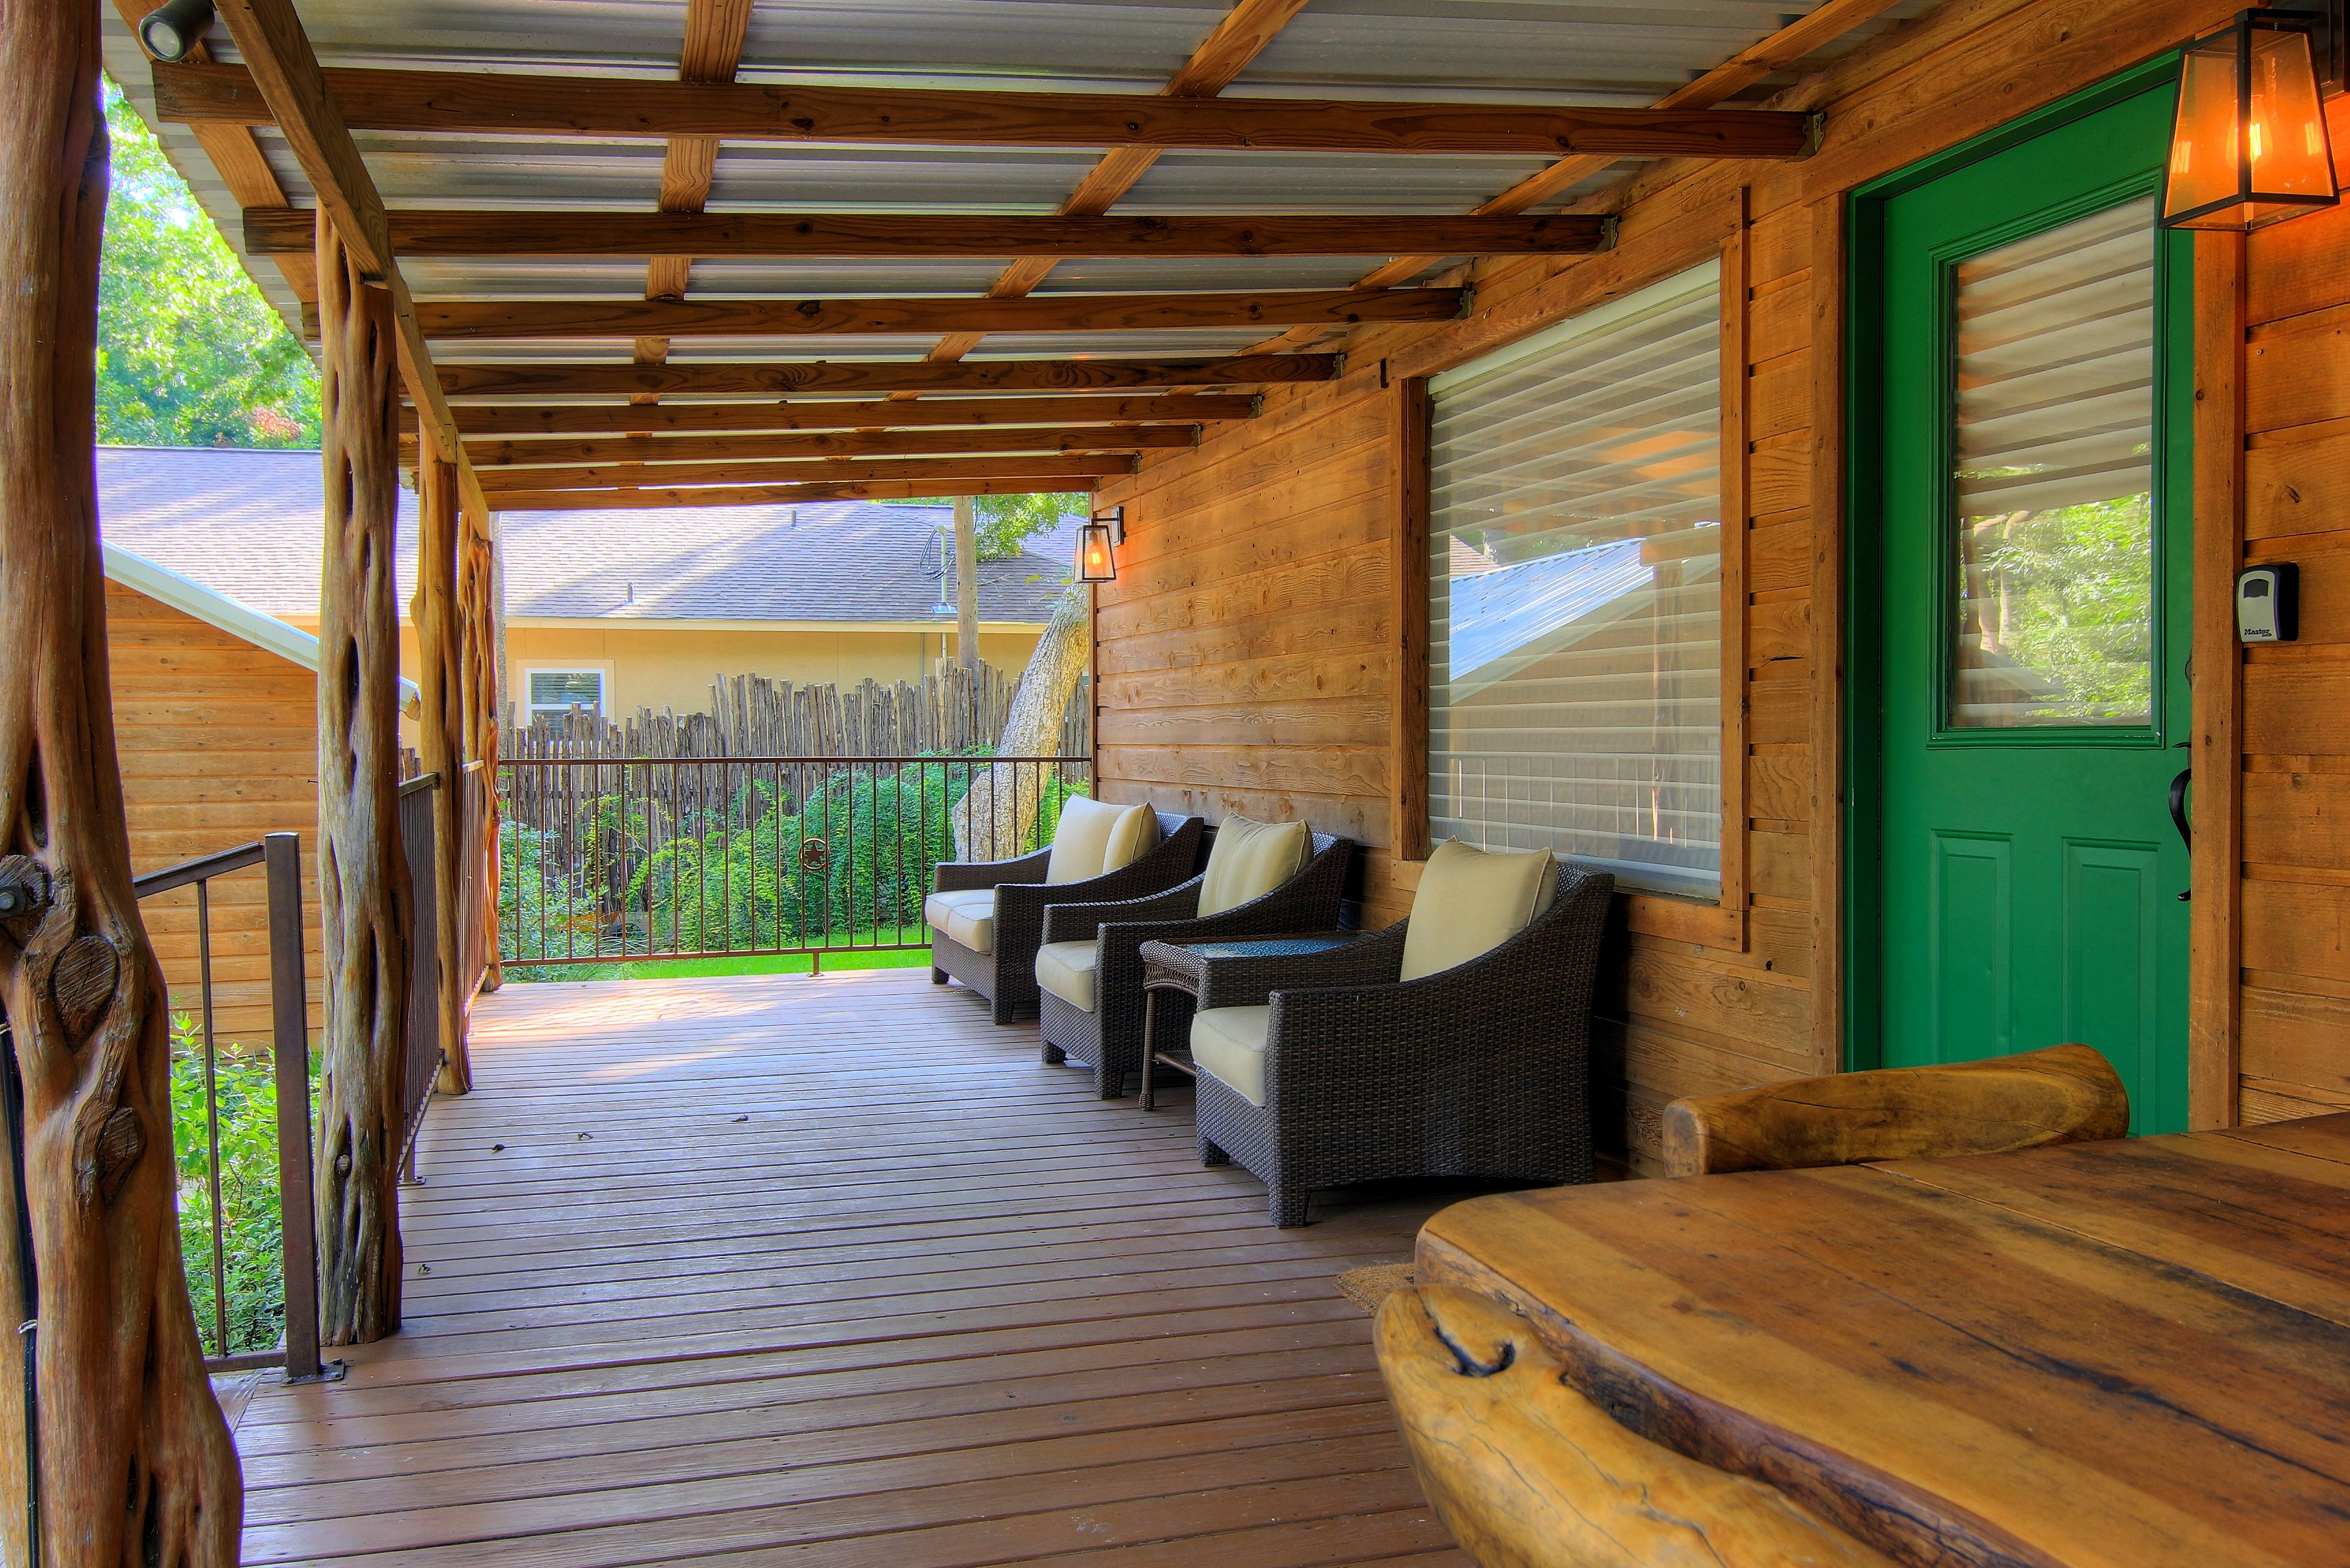 one in lakeside travel us cabana and properties an itself our love you braunfels cabin will is cabins about insulated staying new memorable best at experience a treehouse rentals geronimo of texas